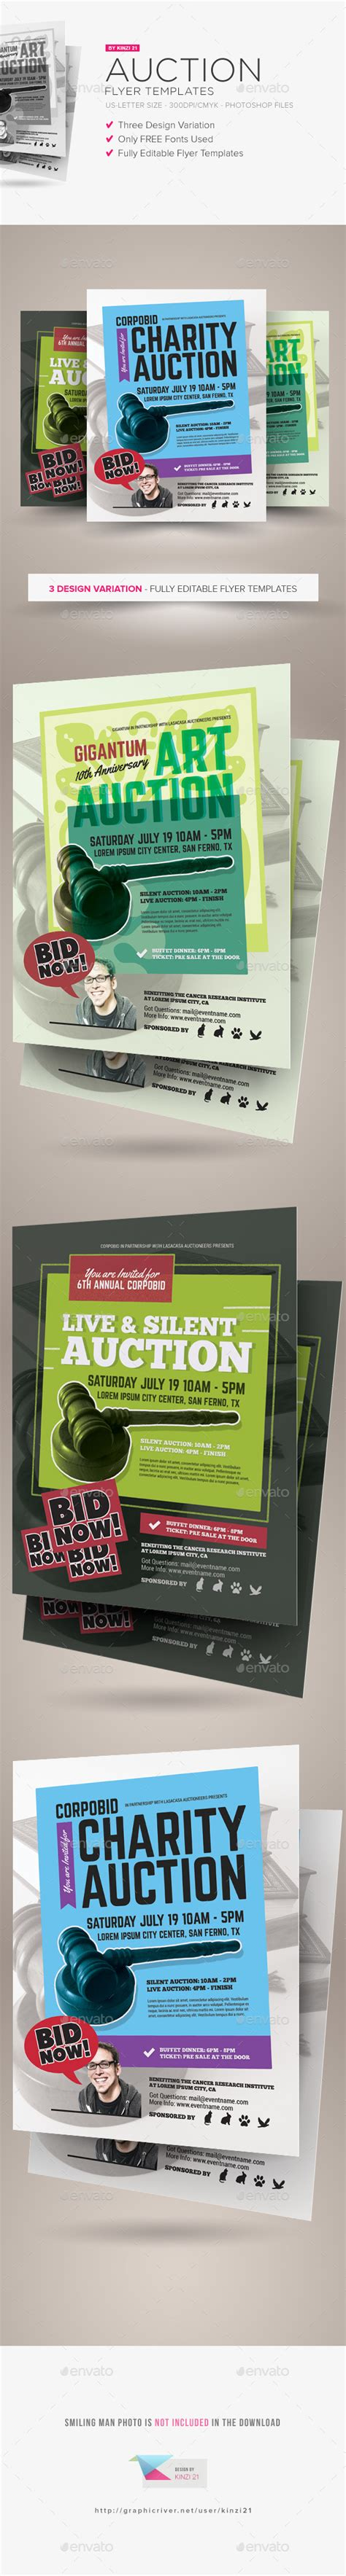 Auction Flyer Templates Template Event Flyers And Pr With Free Raffle Flyer Templates Prize Cash Auction Flyer Template